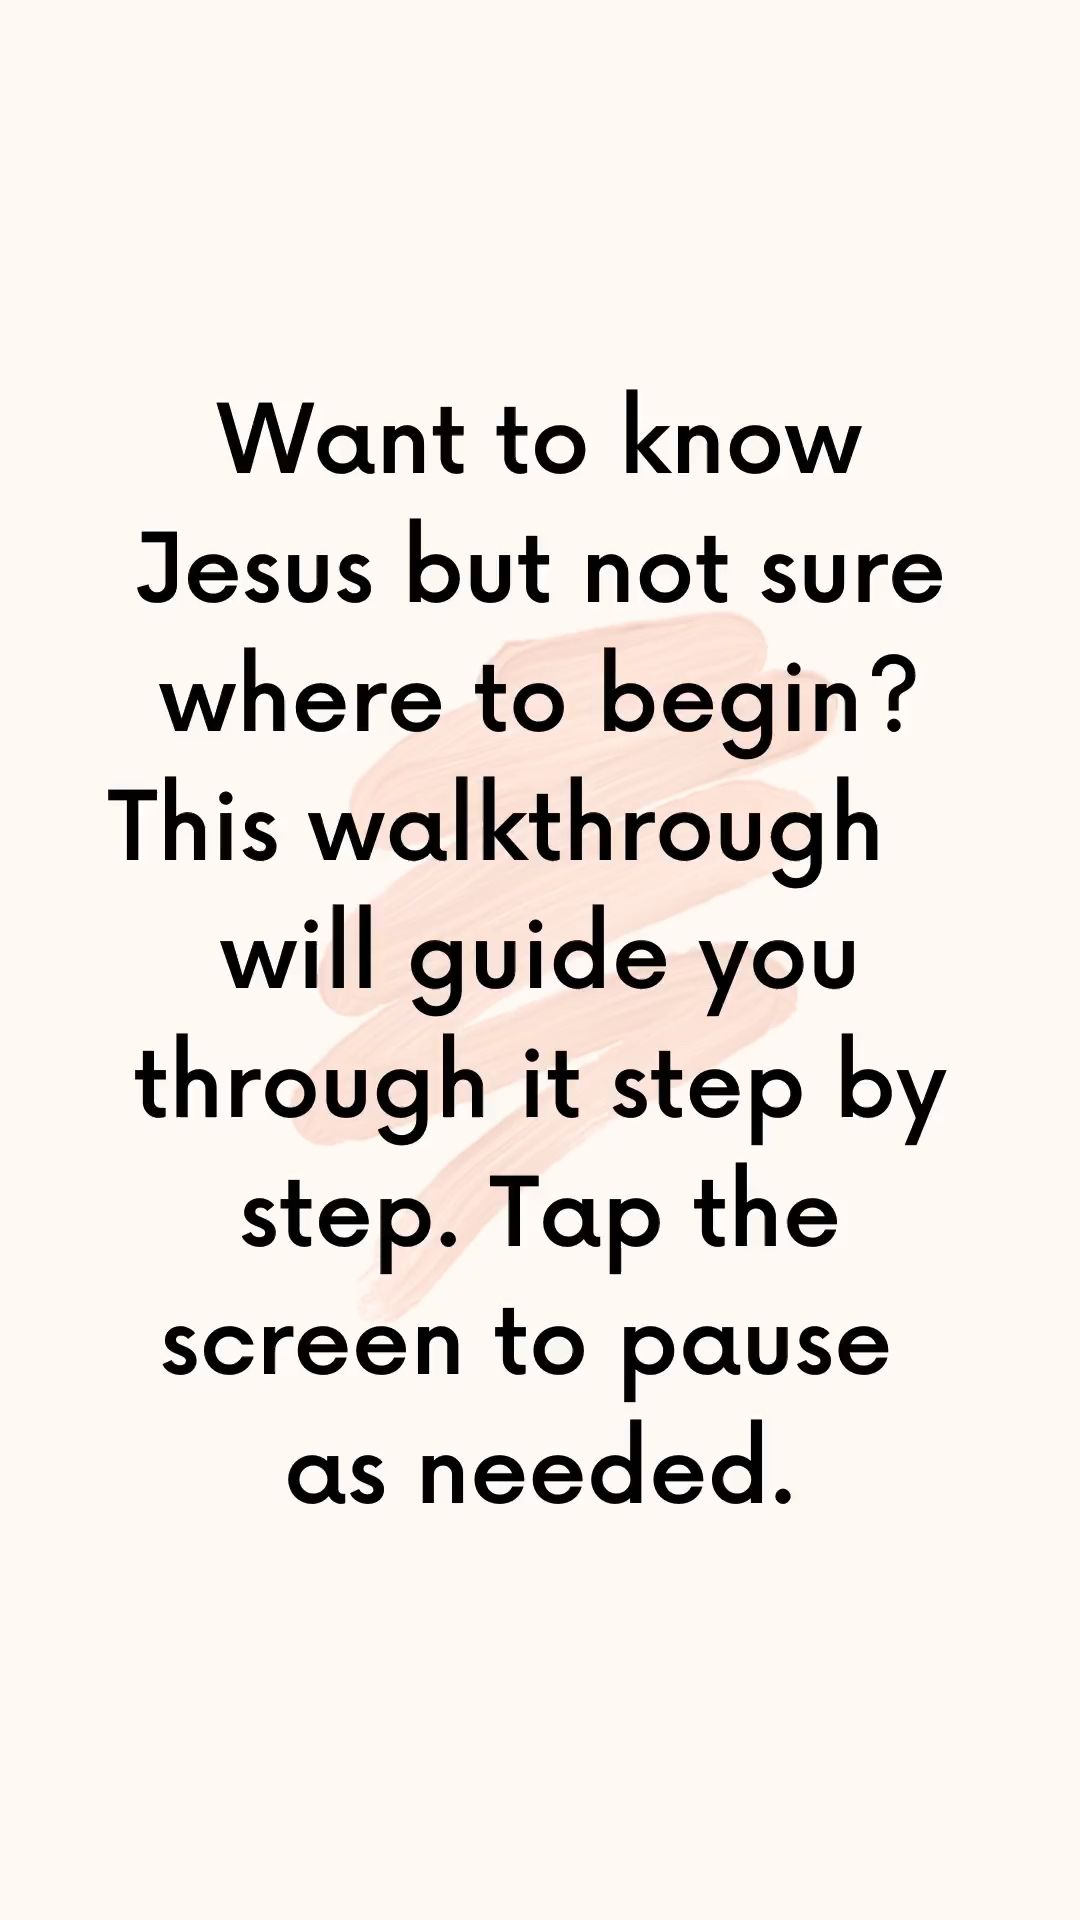 How to know Jesus - A Complete Walkthrough